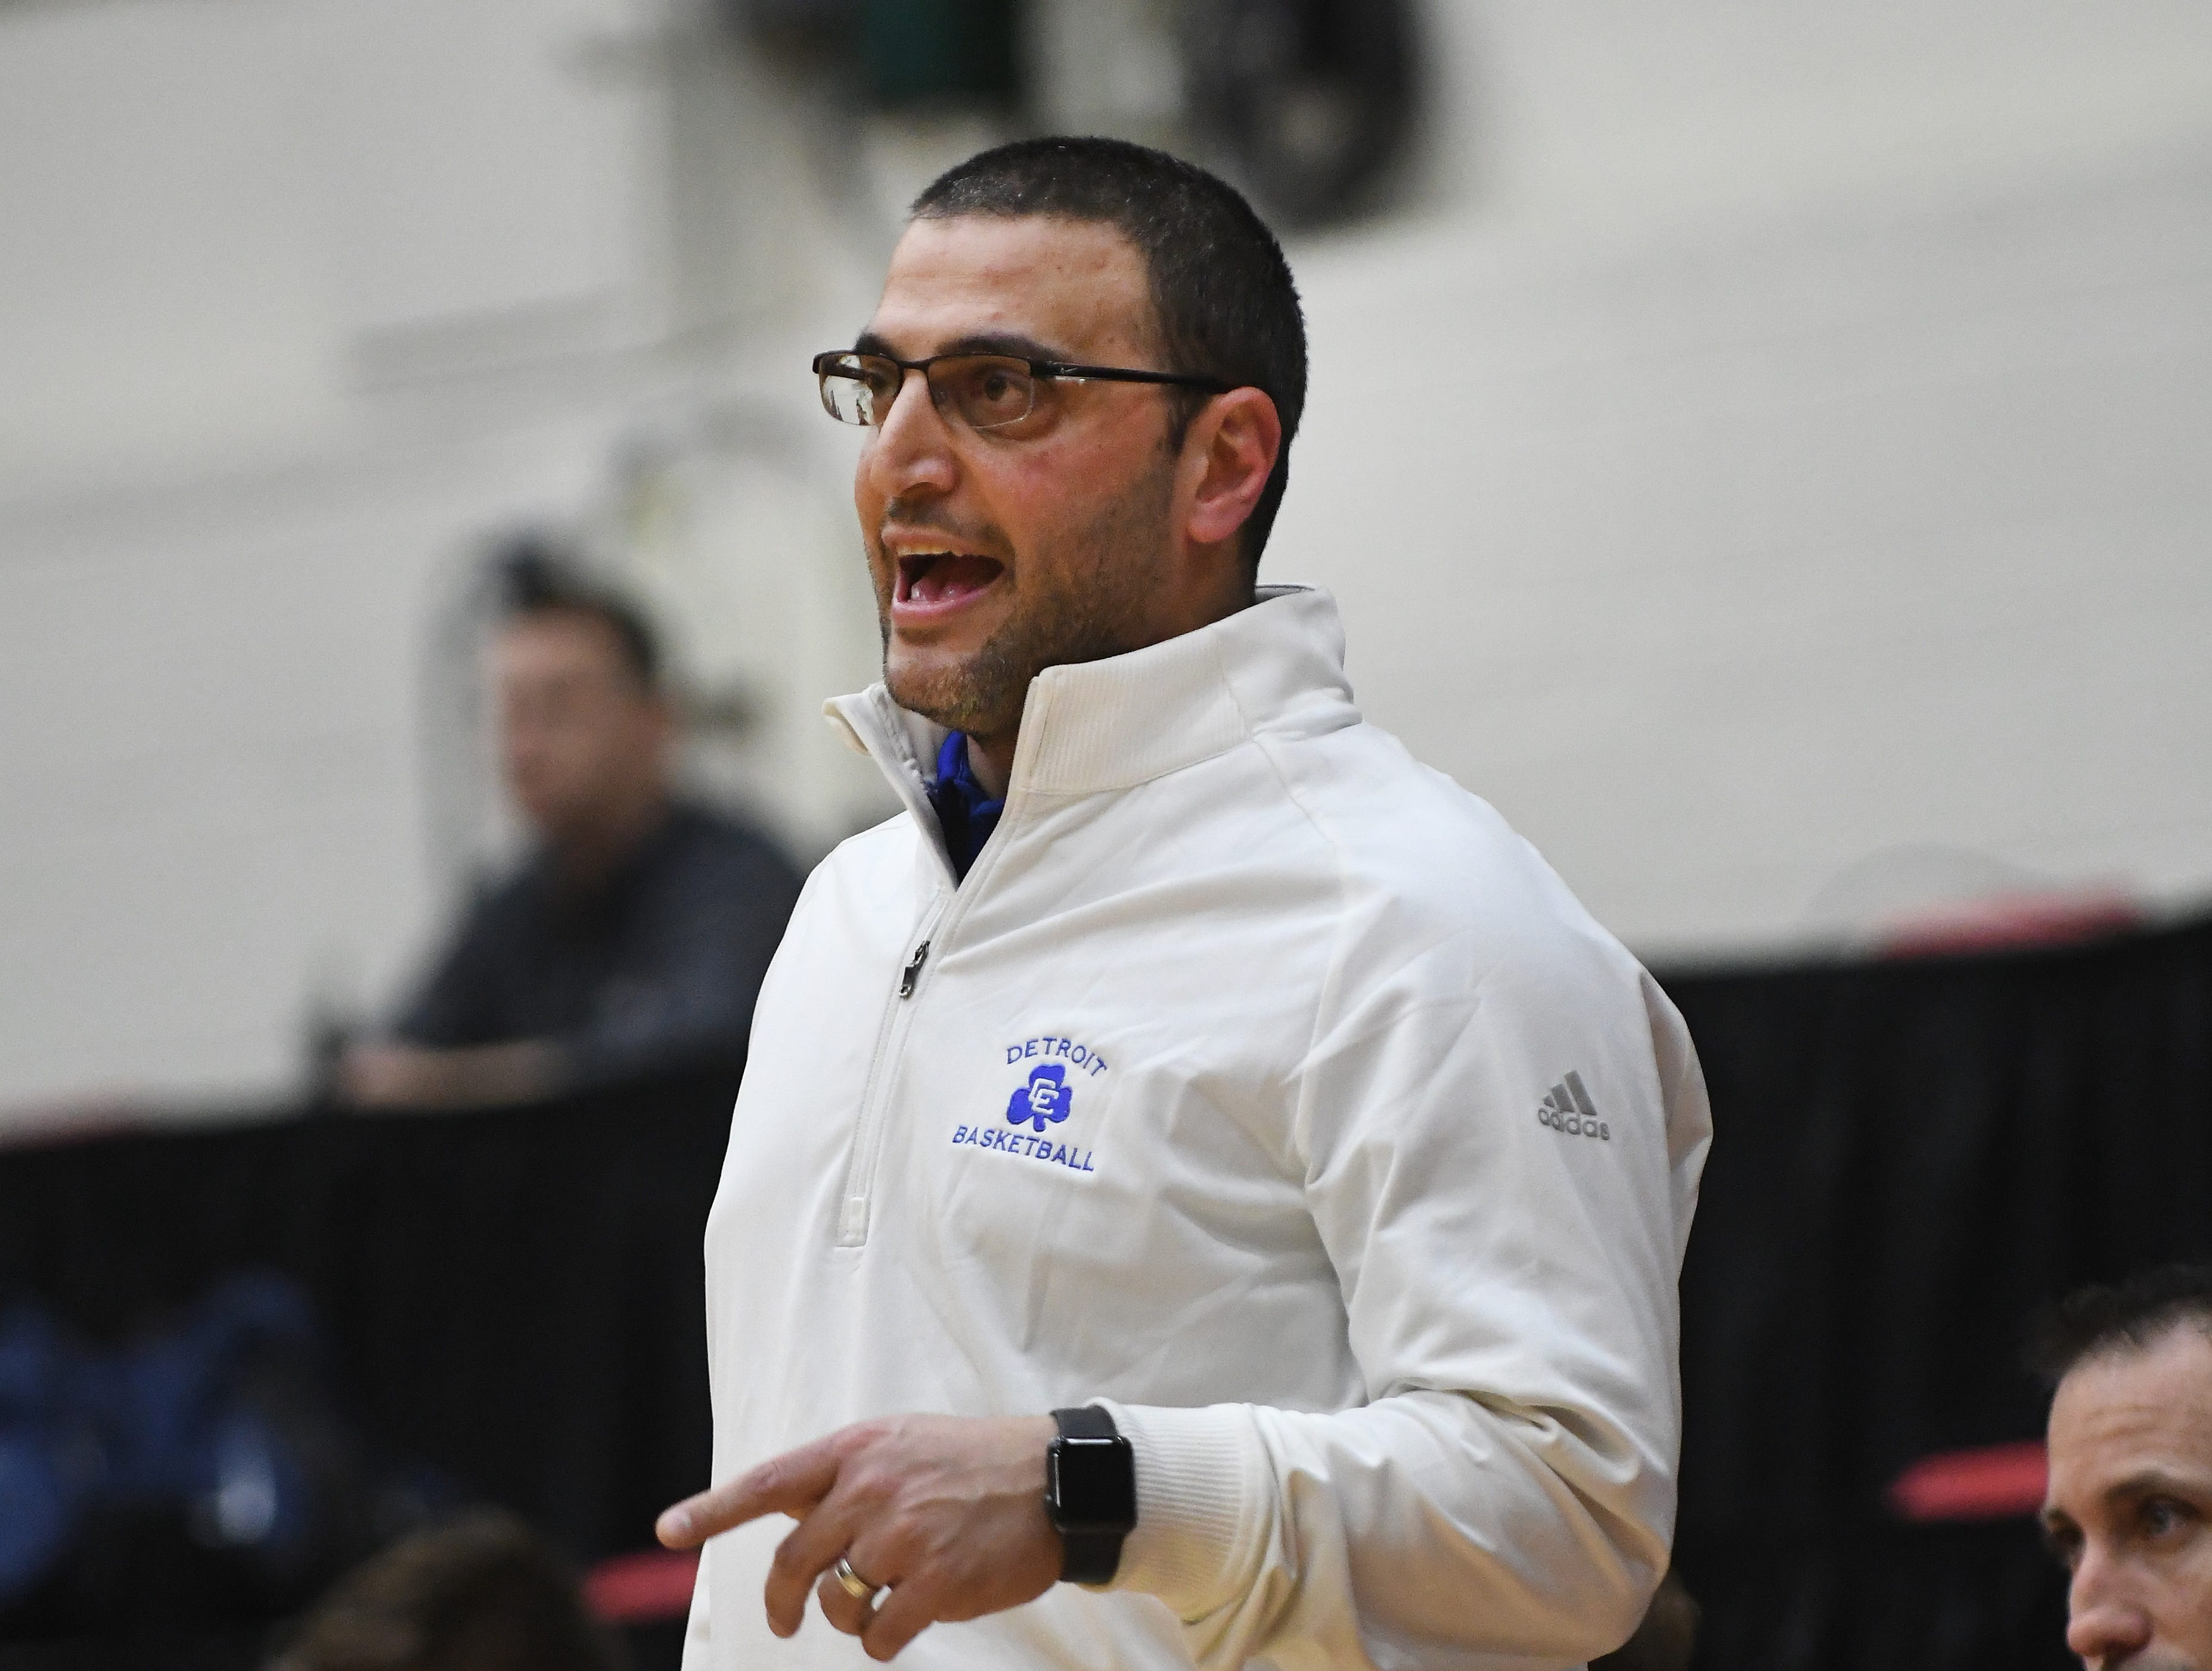 Catholic Central's head coach Brandon Sinawi calls out to his players in the first half of the consolation game.